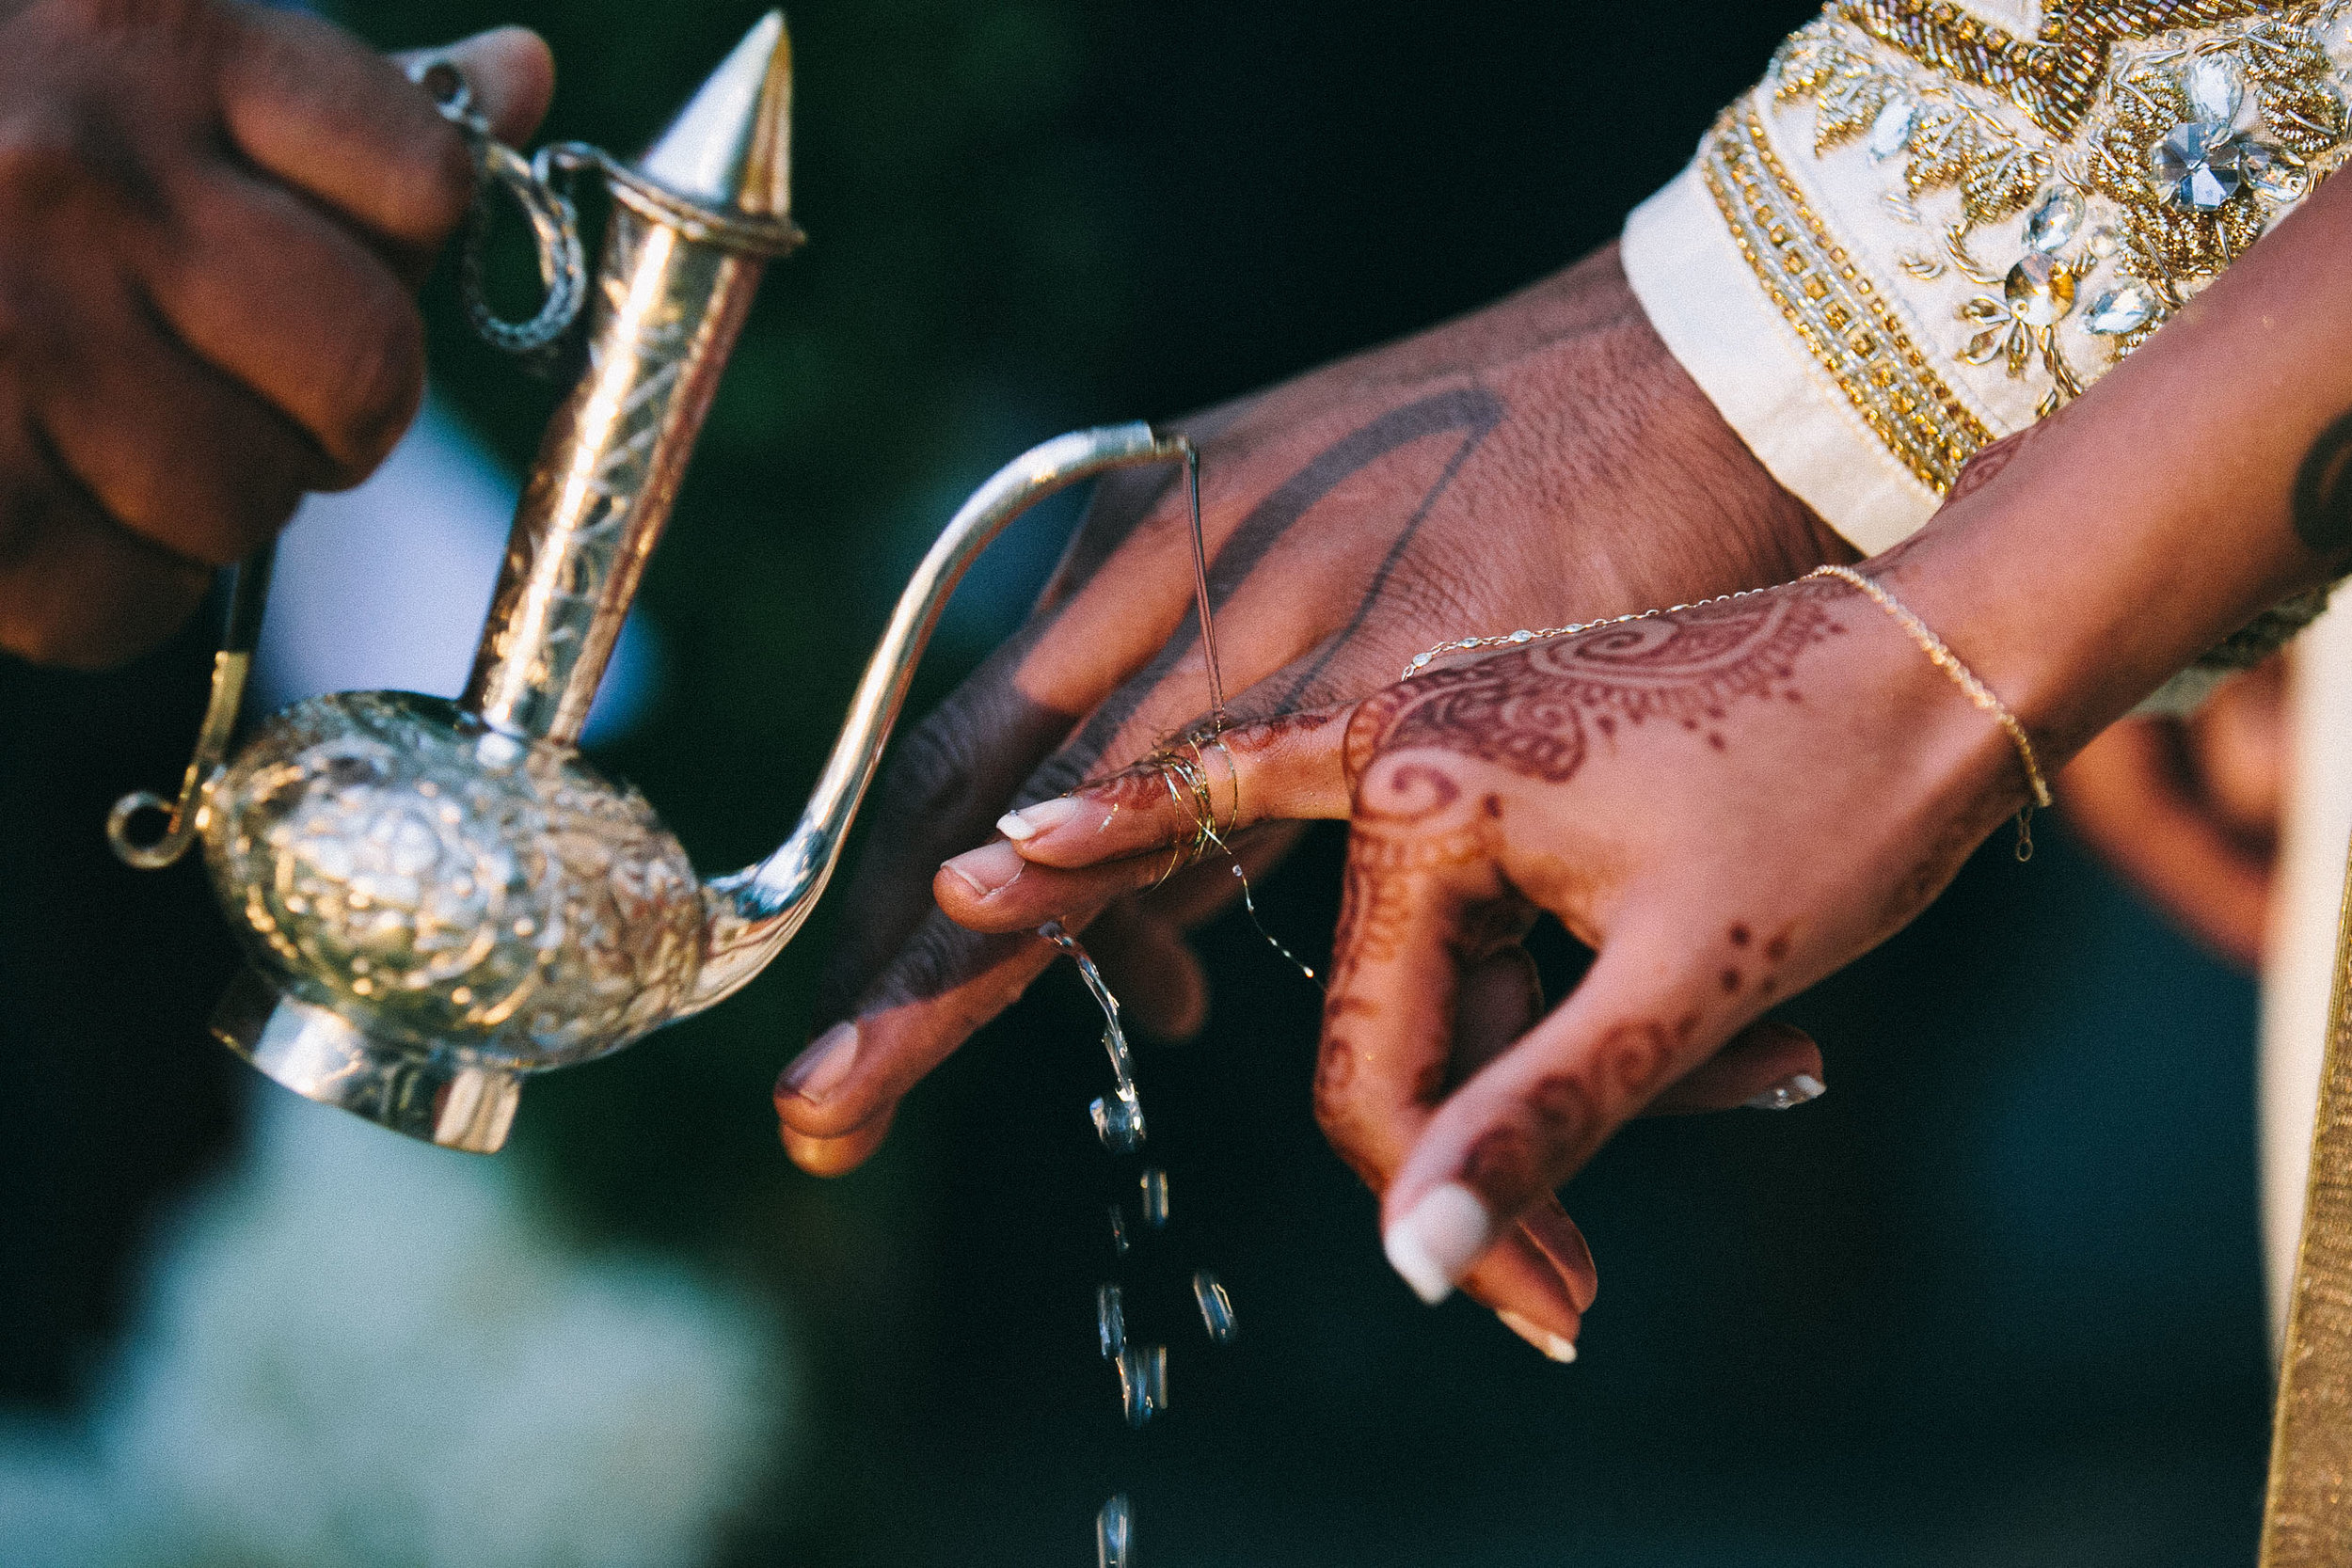 Sri Lankan wedding ceremony Los Angeles fingers tied water poured over